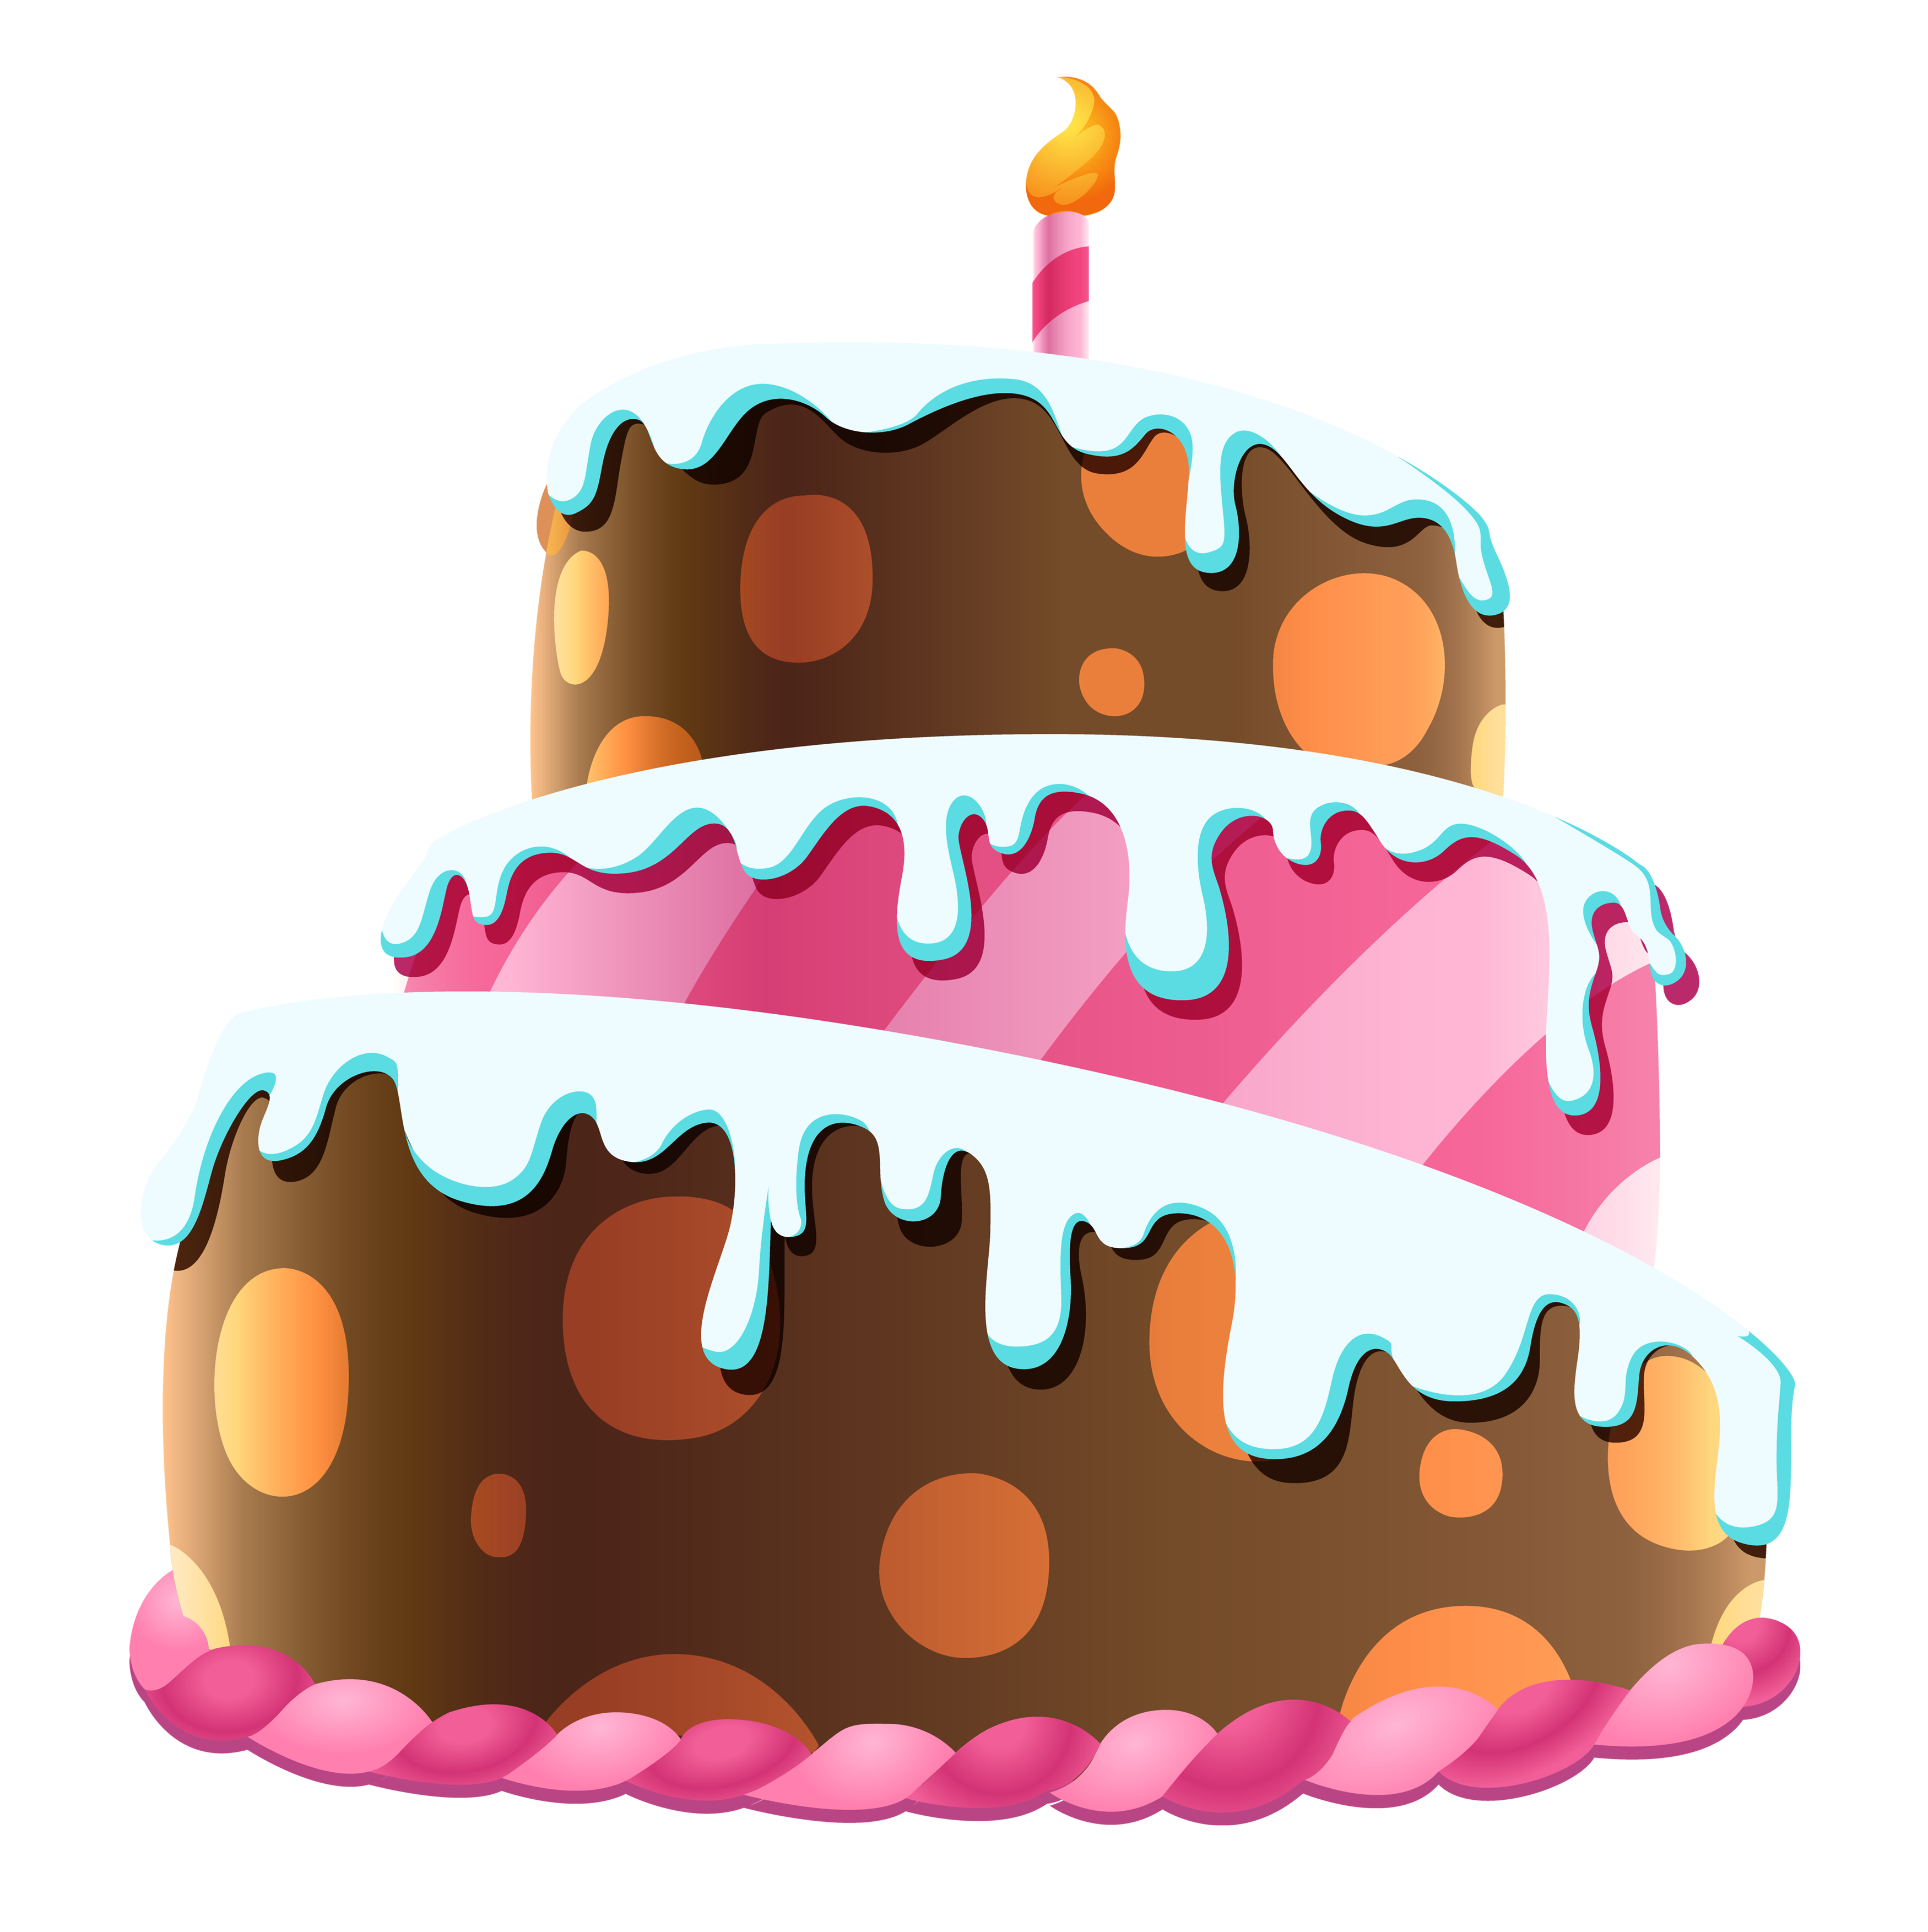 Birthday Cake PNG Transparent Birthday Cake.PNG Images..